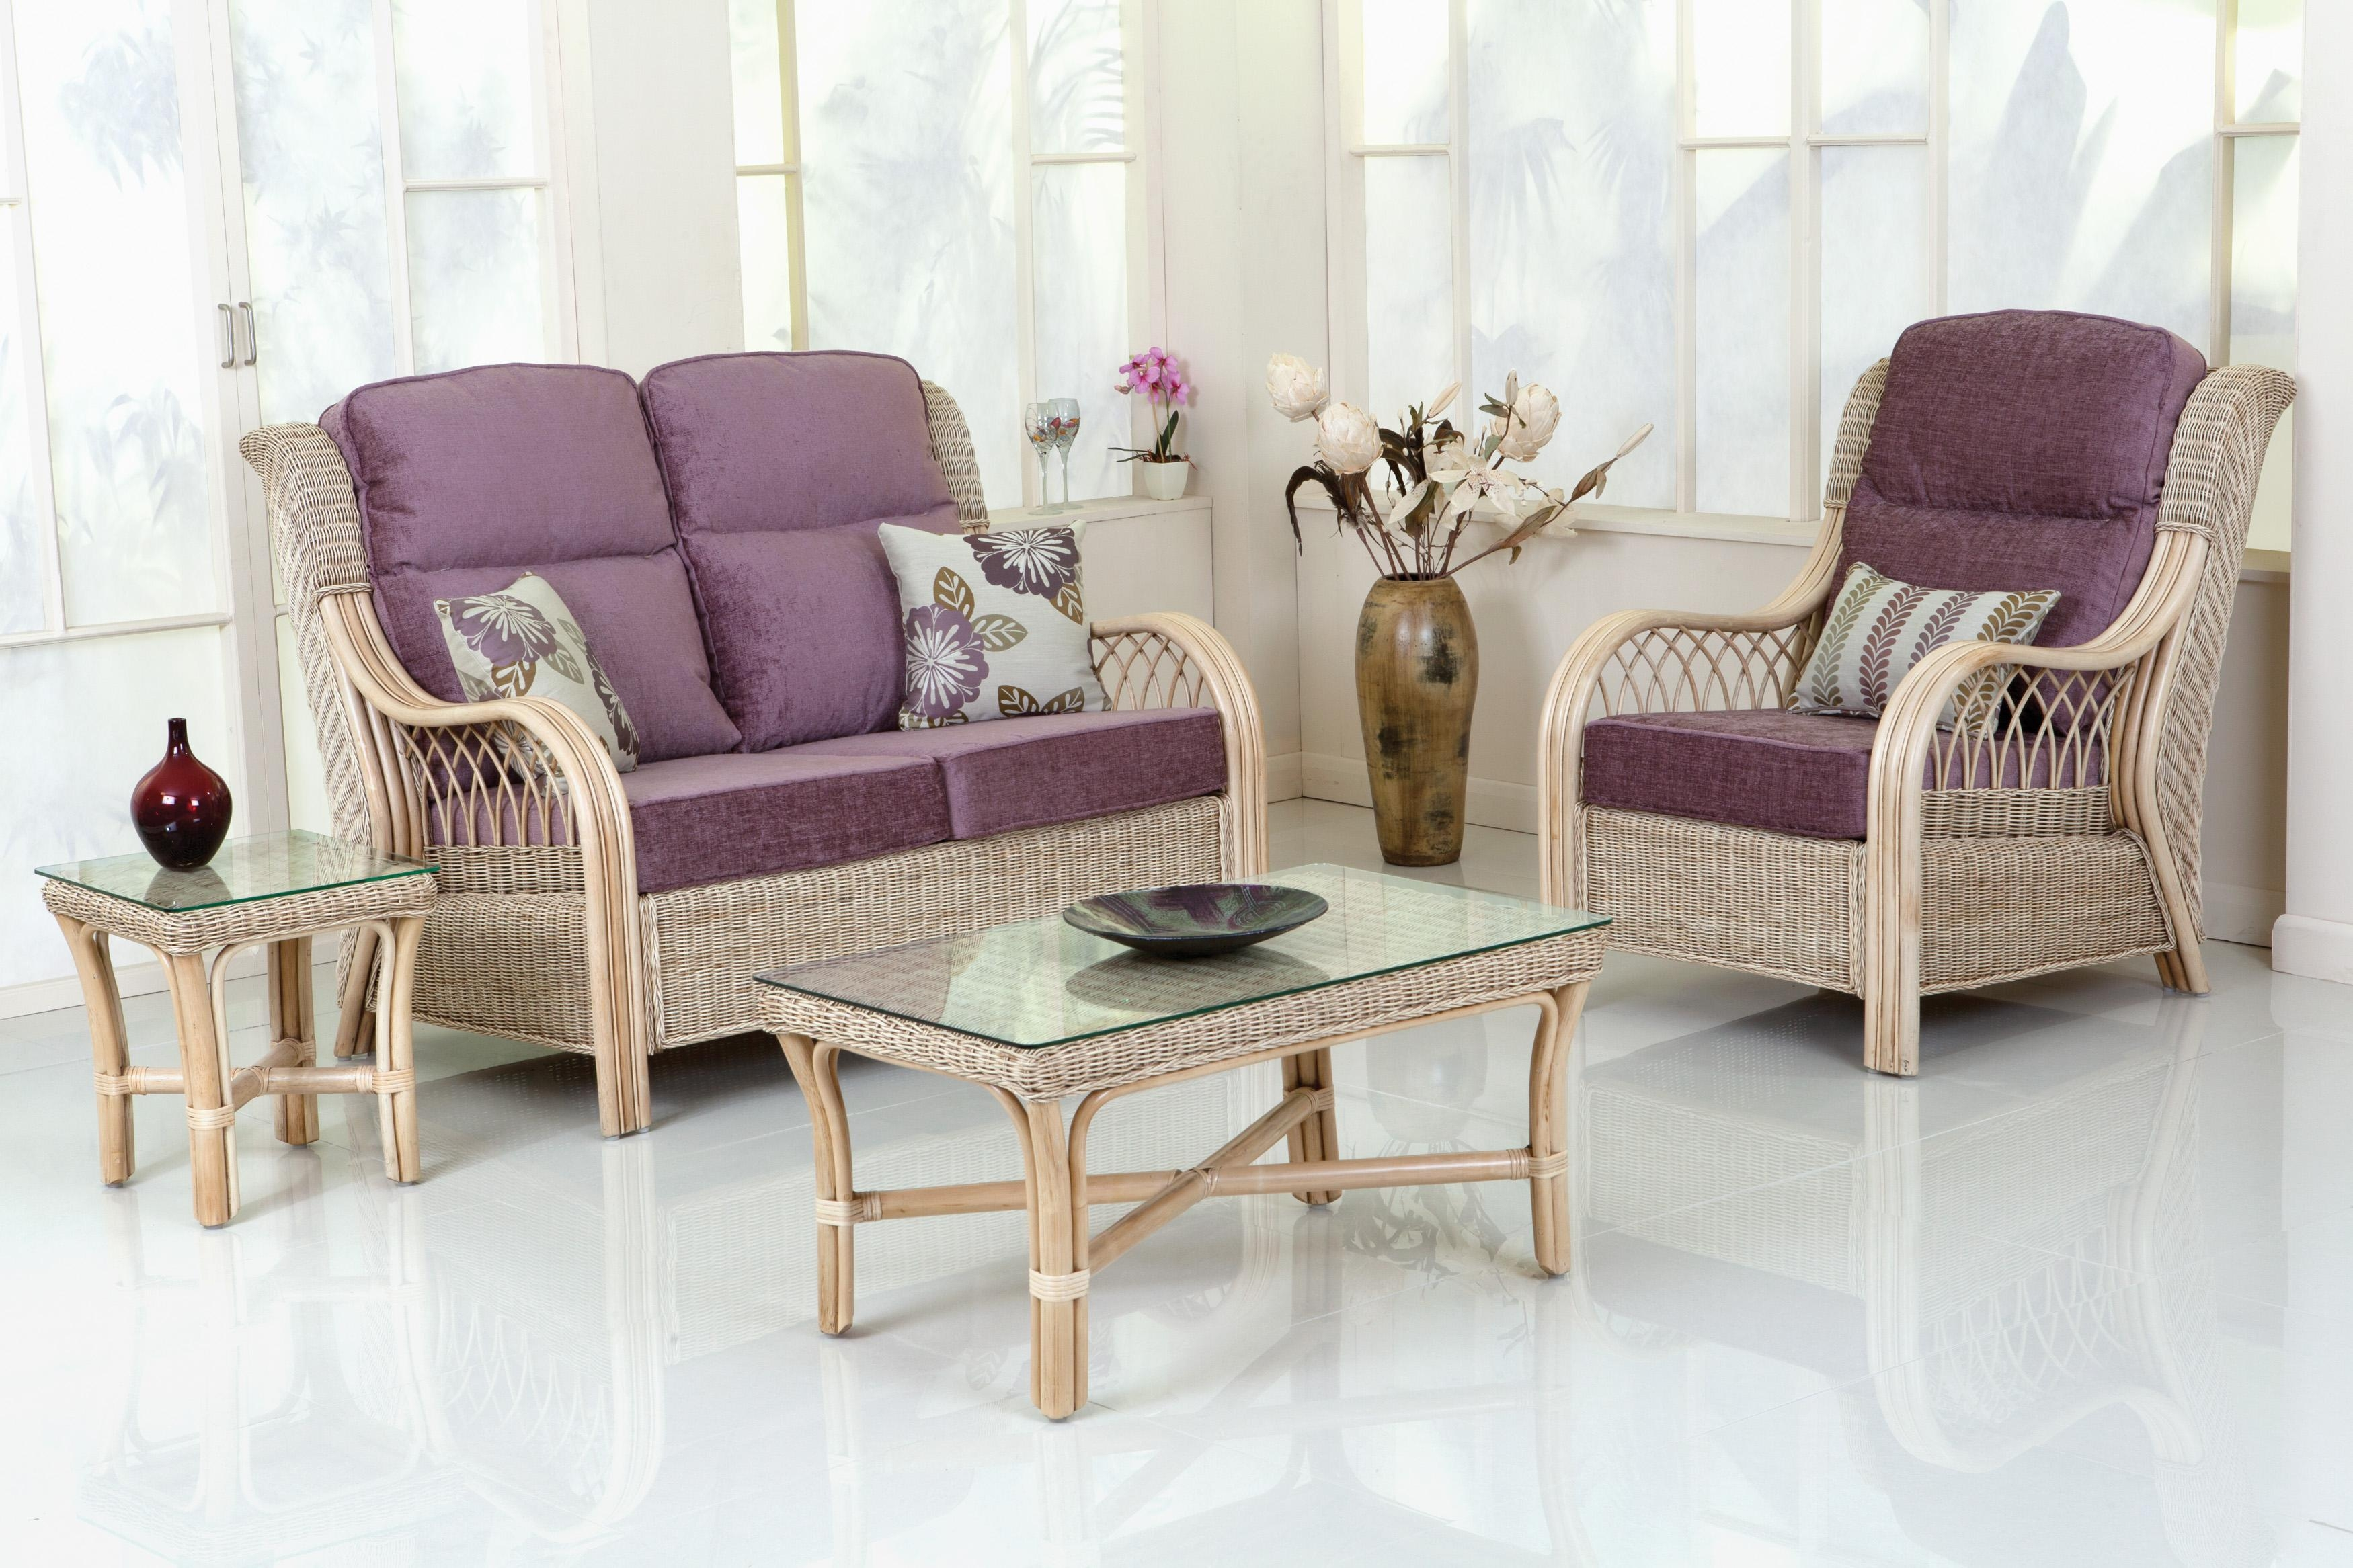 Modern Concept Cane Kitchen Chairs With Cane Furniture Sofa Set Intended For Cane Sofas (Image 13 of 20)